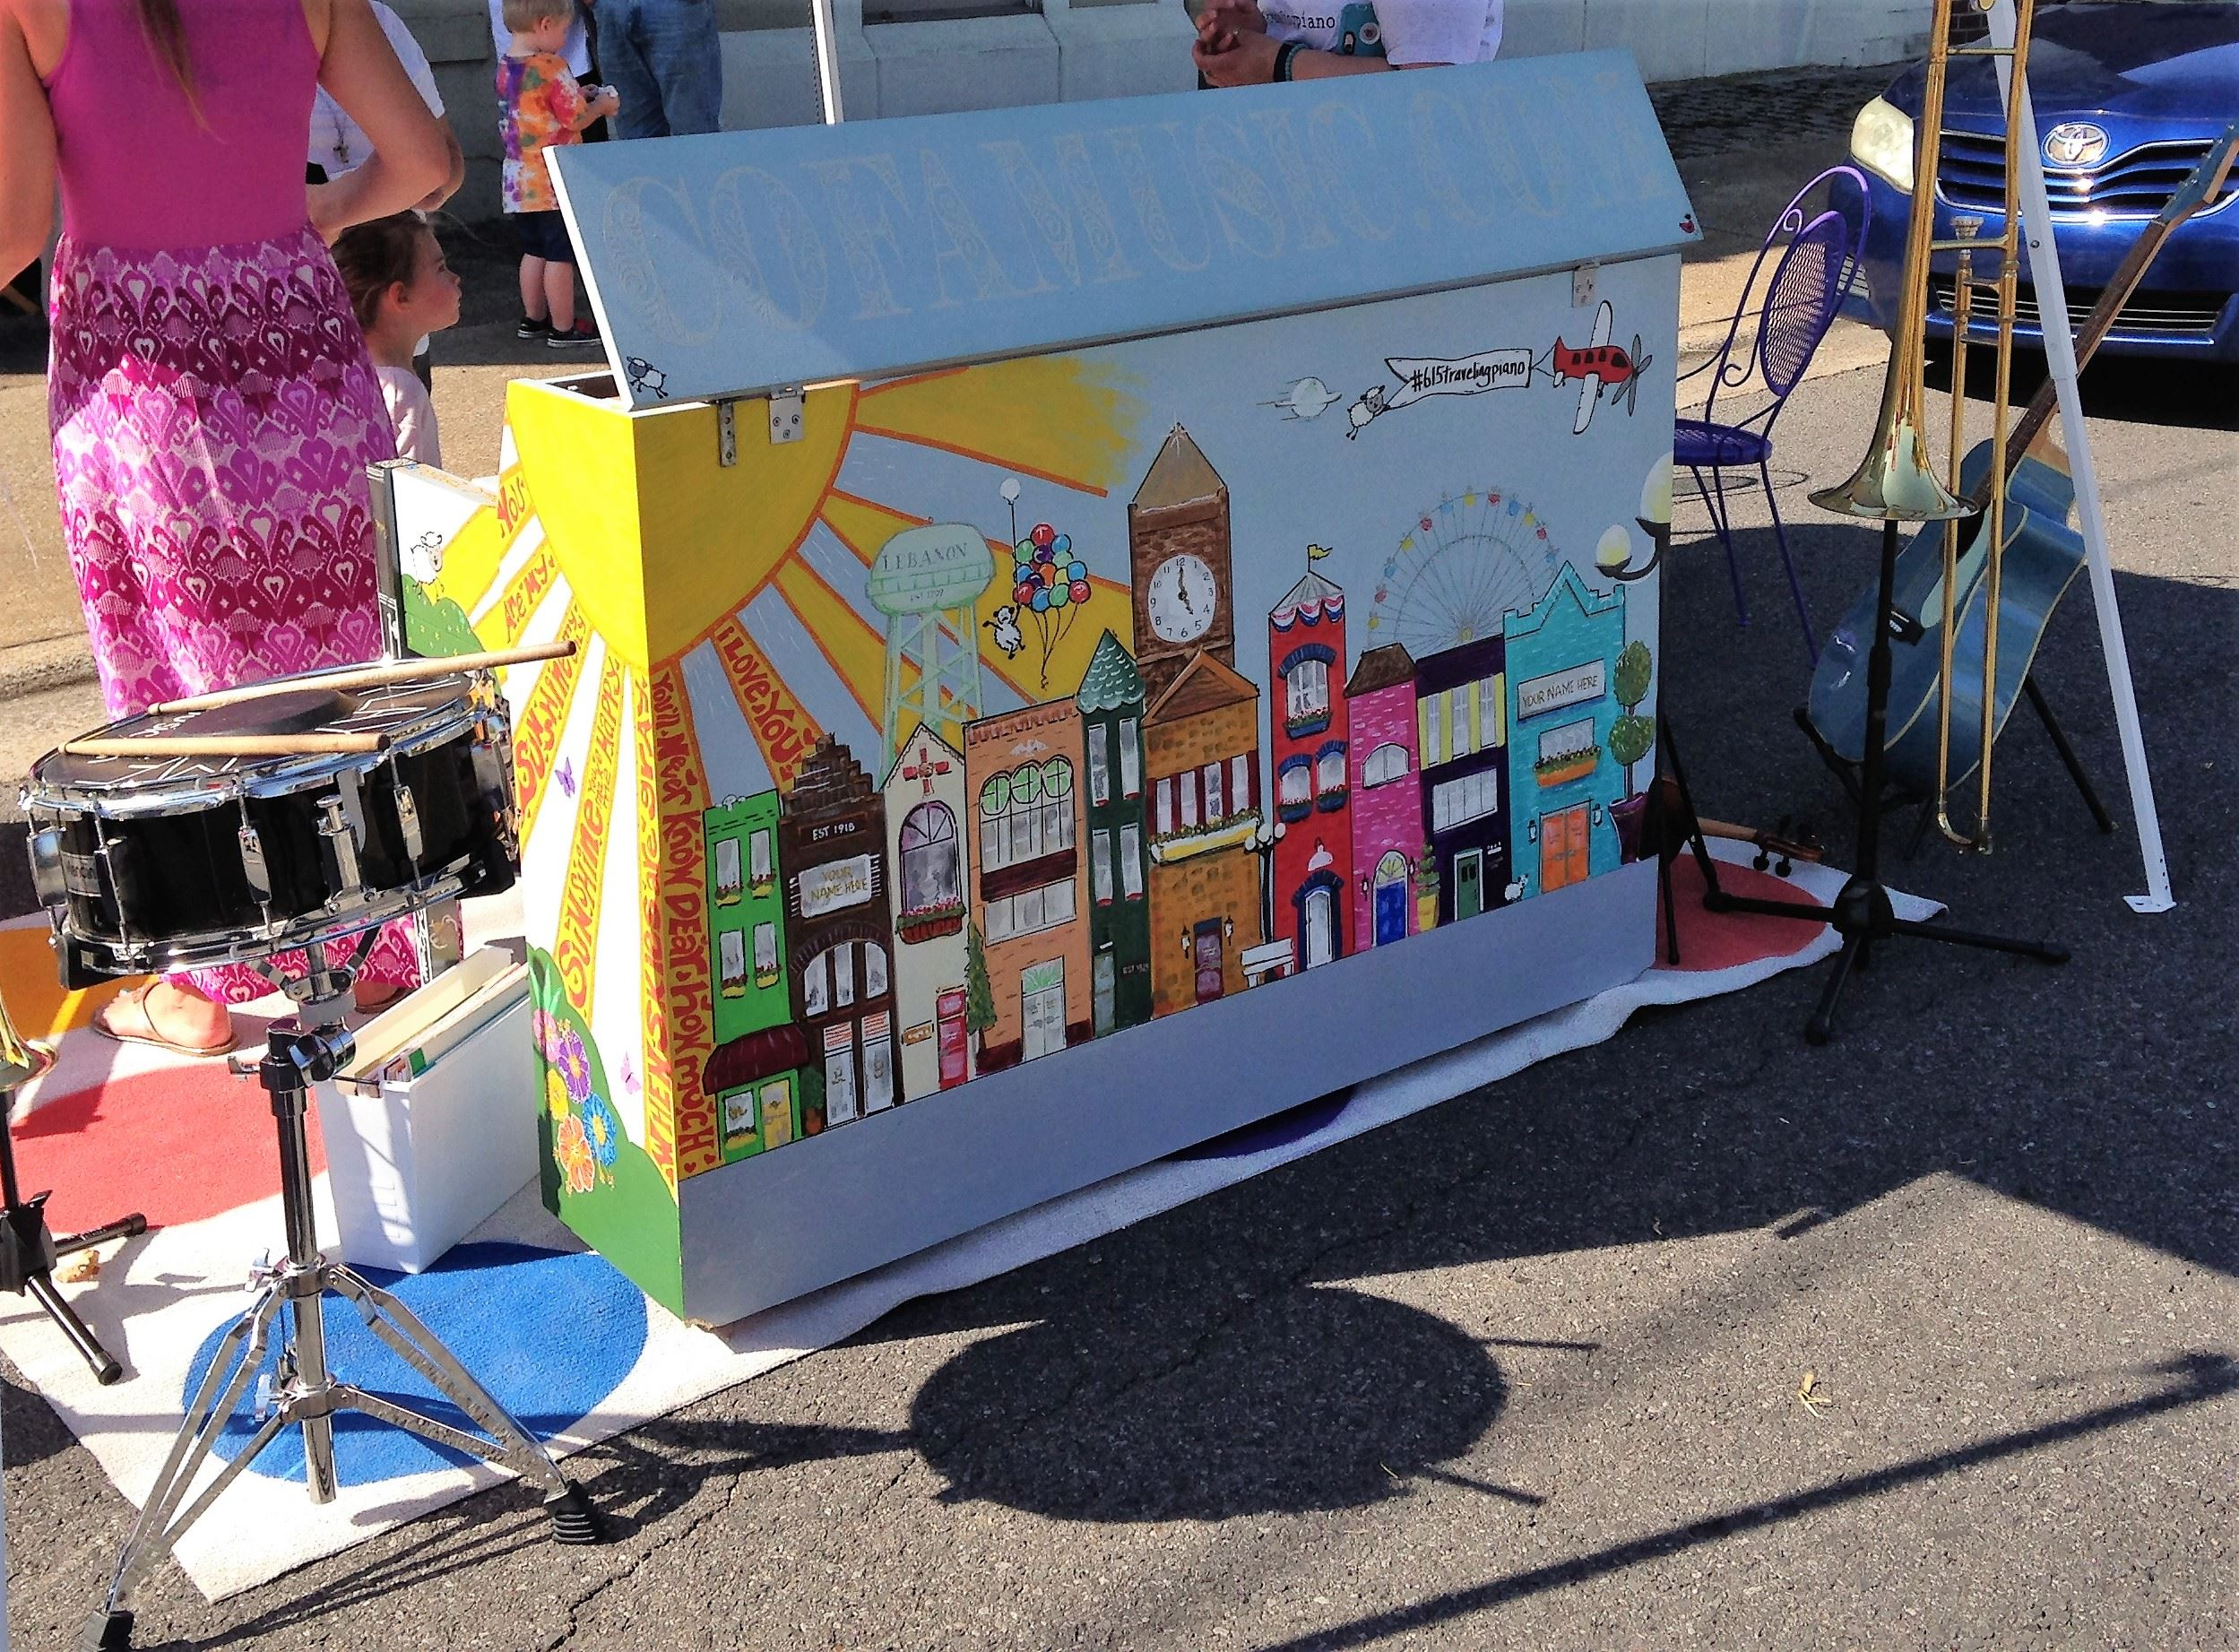 Close up of the traveling piano with painted fun images of lebanon buildings.